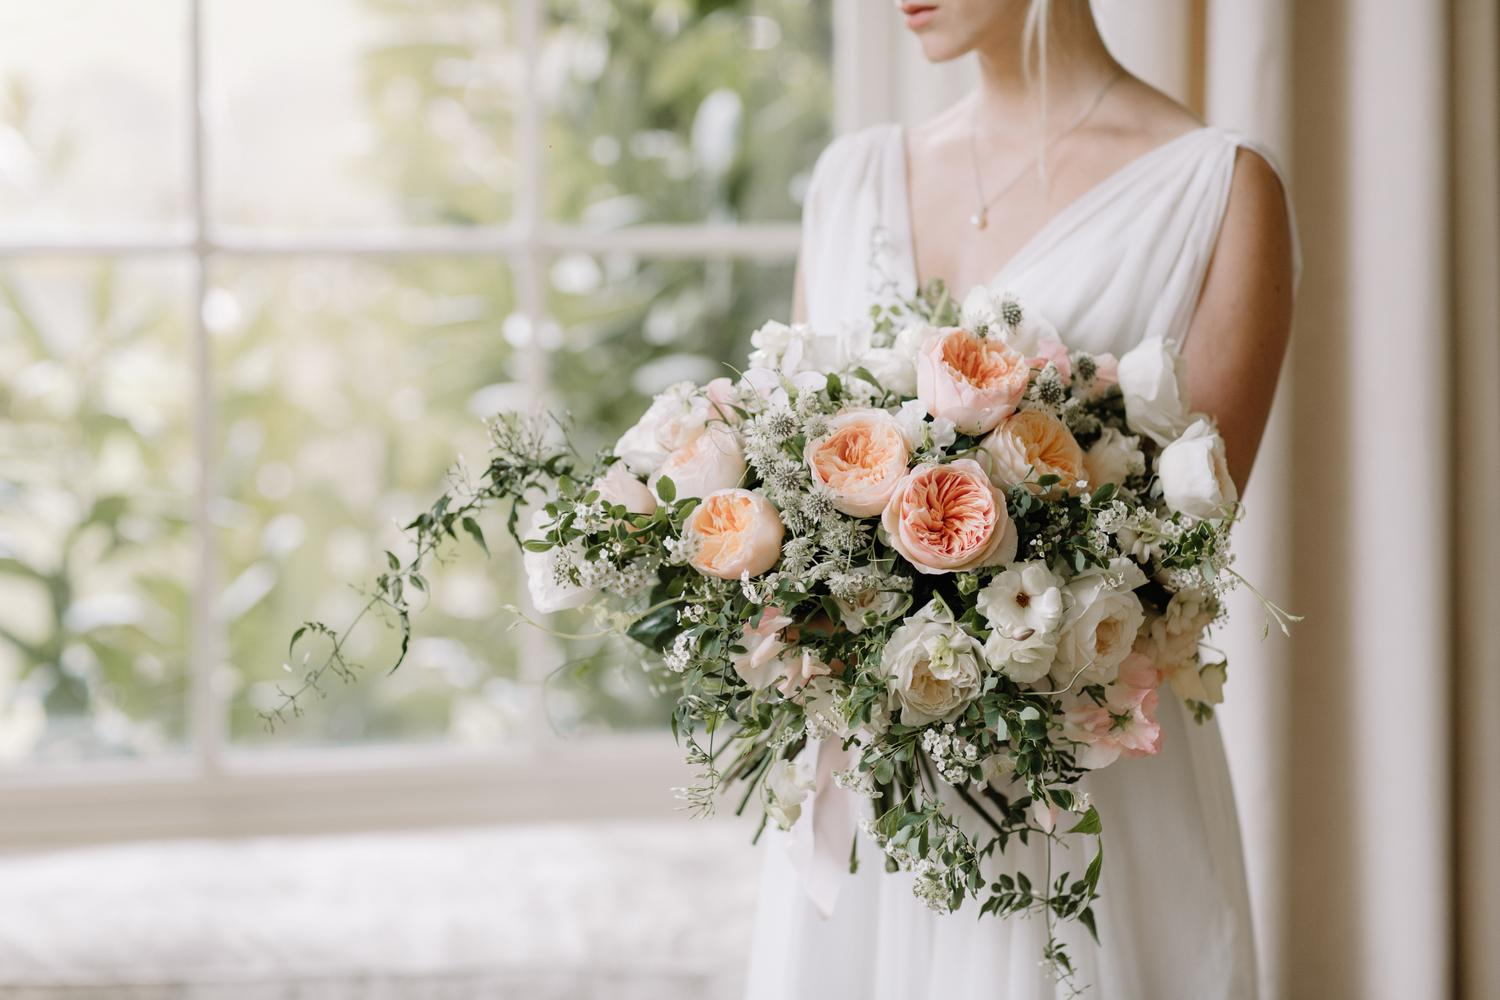 Pynes House Wedding with Bride and Bridal Bouquet